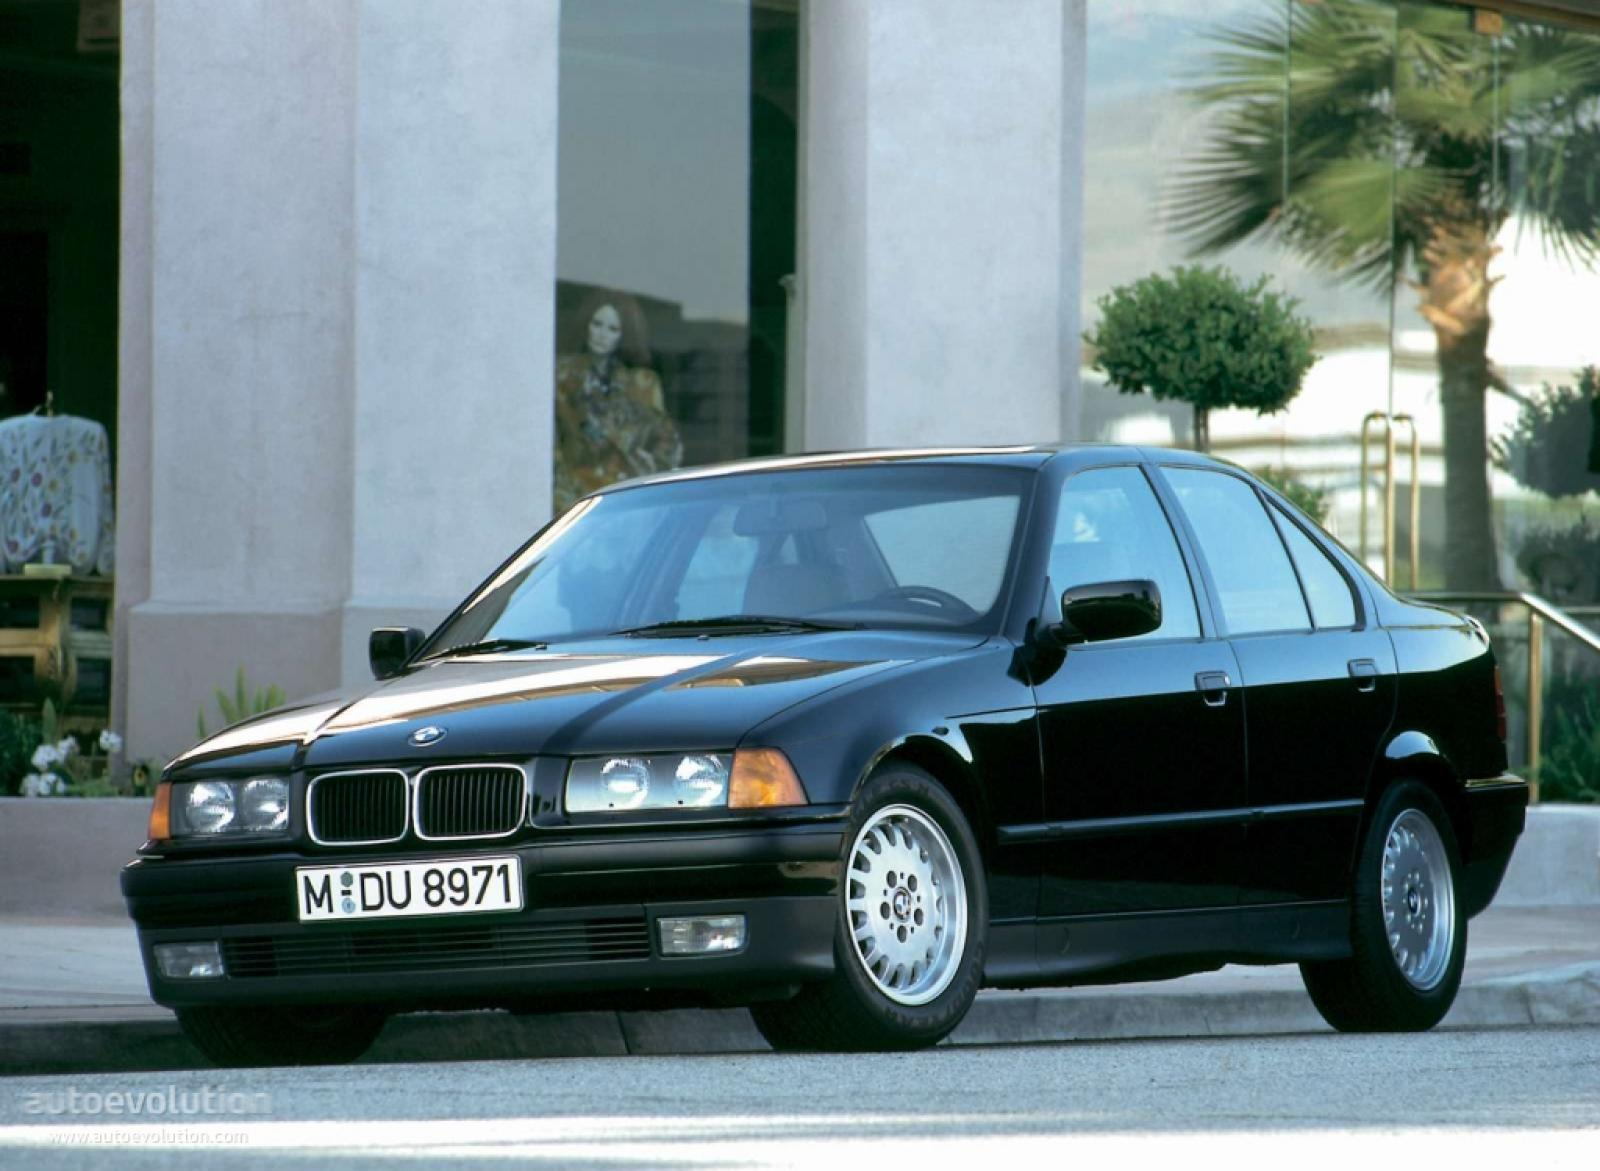 1991 Bmw 3 Series Information And Photos Zombiedrive Engine Diagram Of 1994 318 800 1024 1280 1600 Origin